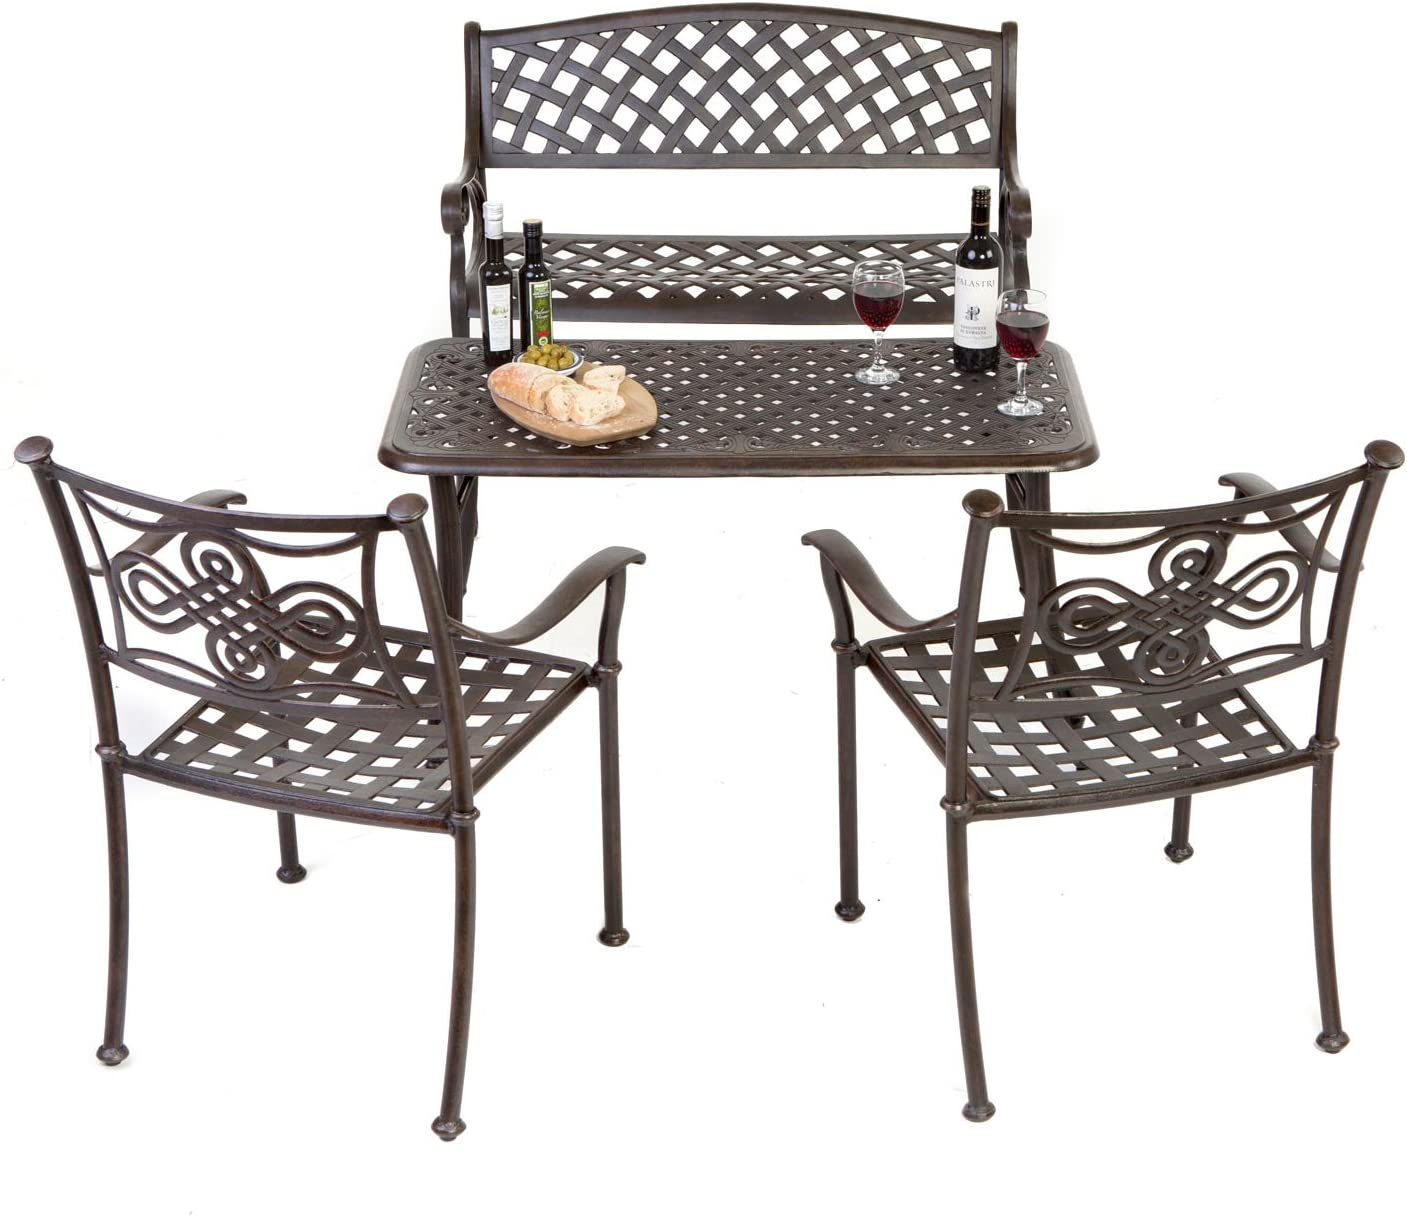 Bench Table Chairs Set Aluminium Outside Furniture 4 Seater Set Amazon Co Uk Garden Outdoors